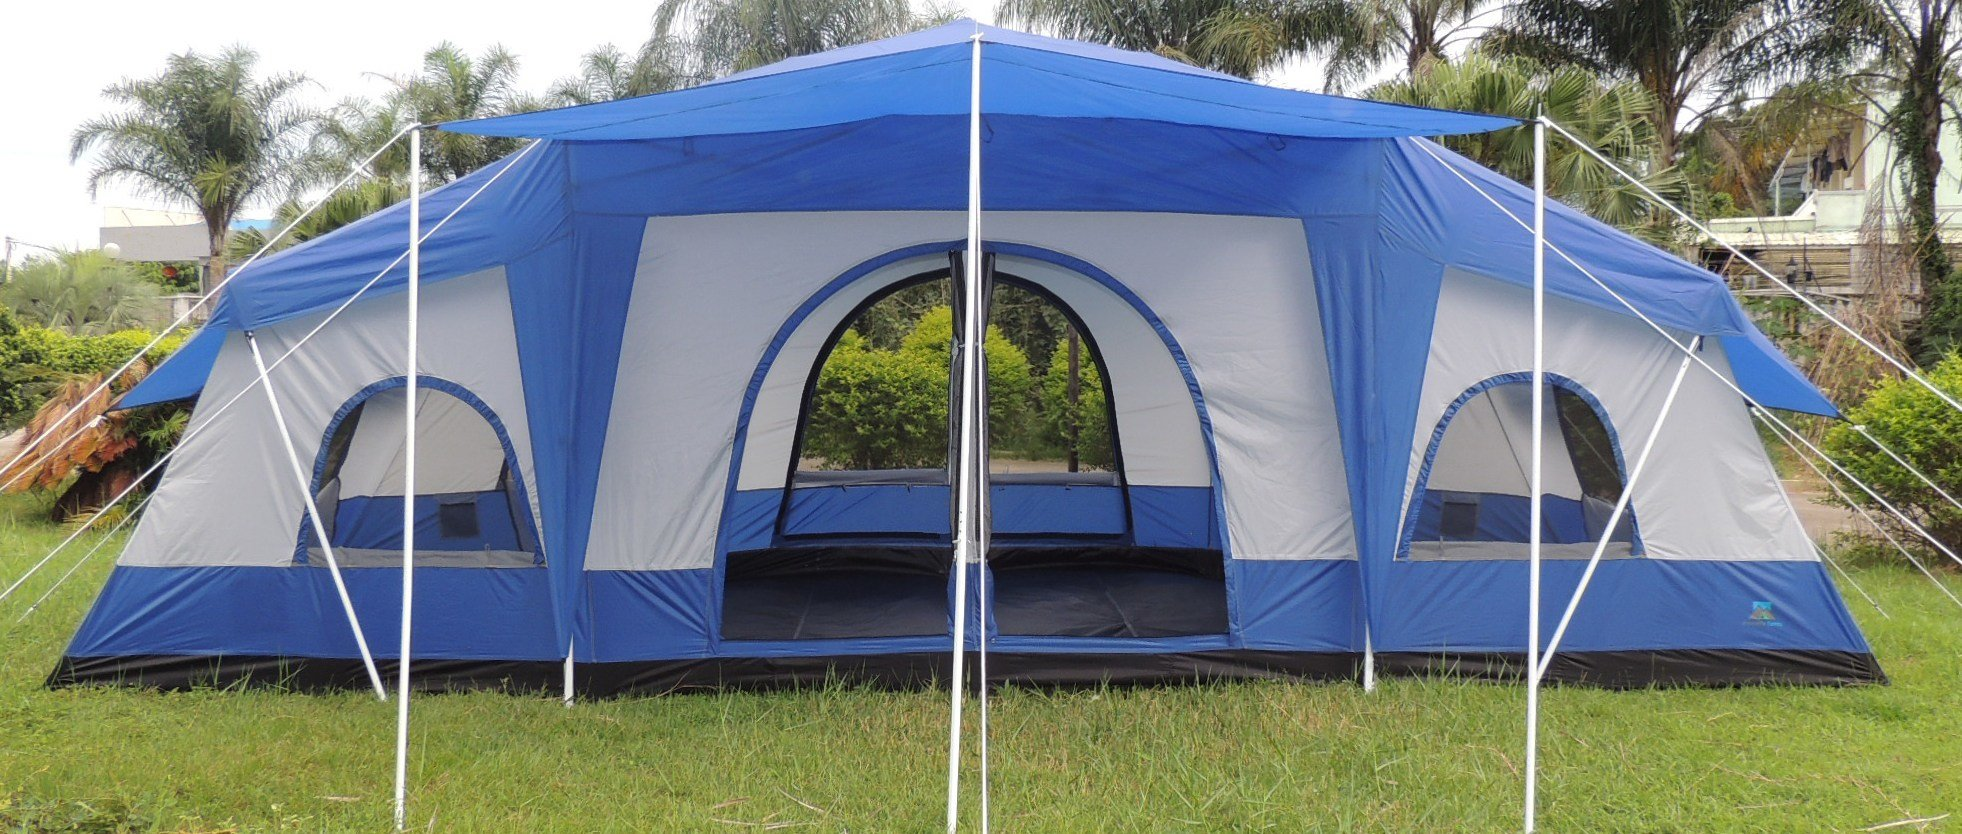 Best Deluxe 4 Room Cabin Tent 24 X10 Large Camping Tent With Pictures